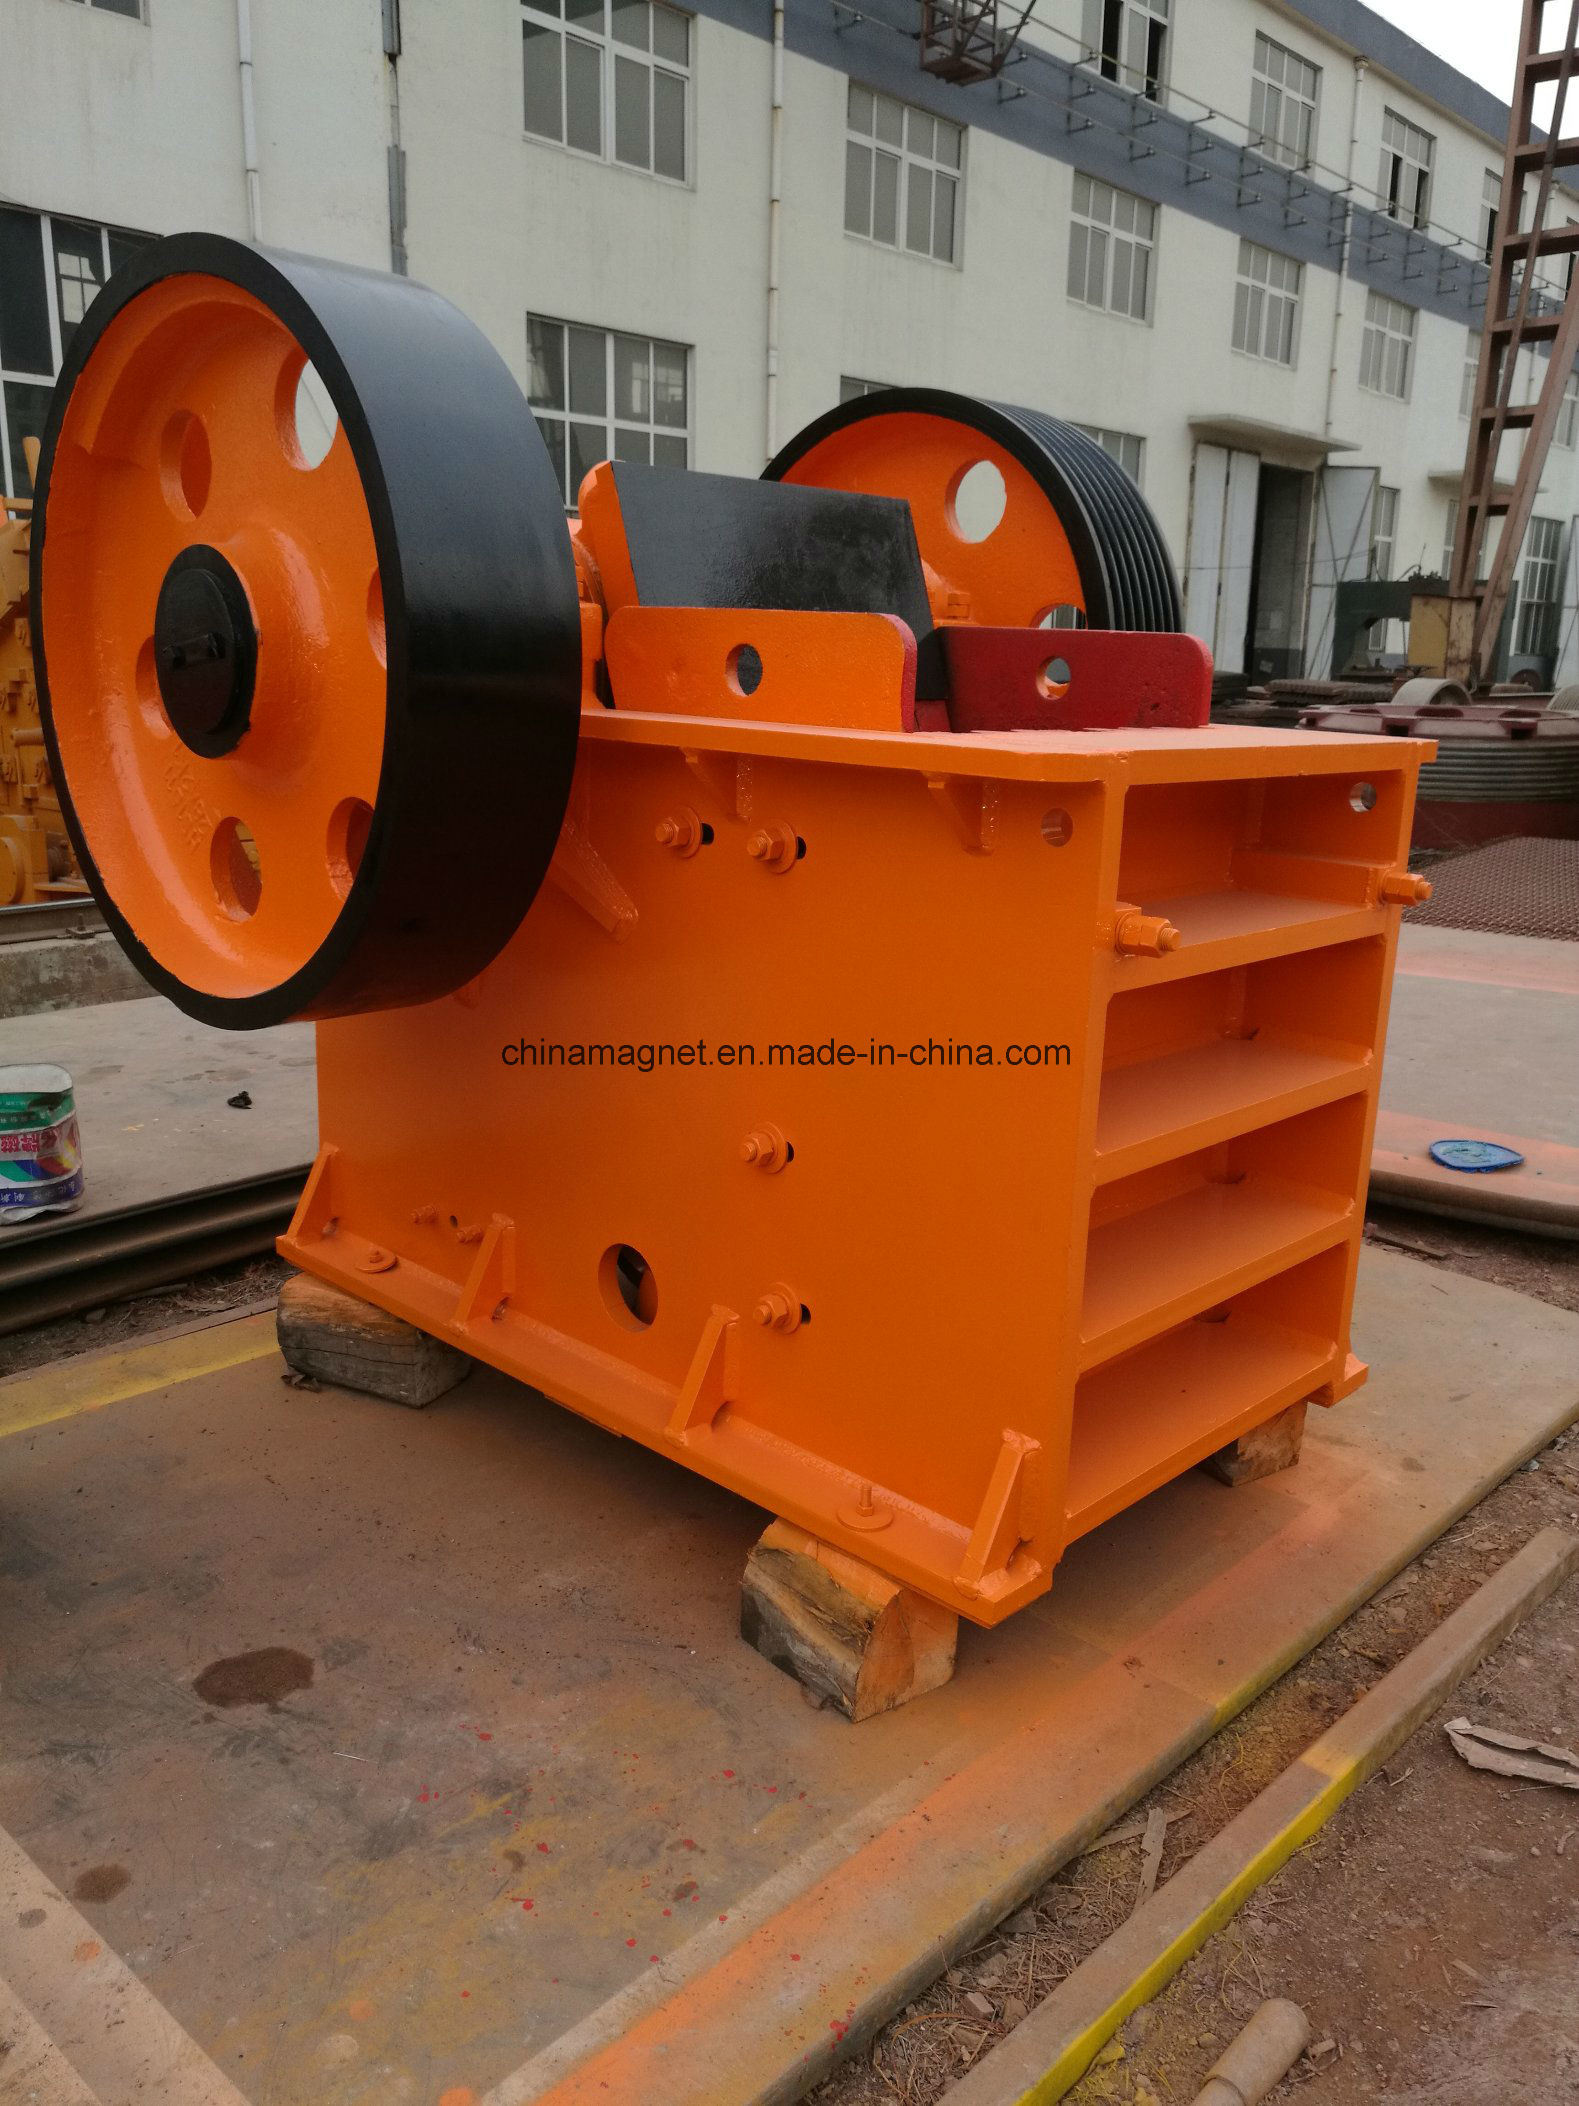 Advanced PE Jaw Crusher/ Stone Crusher for Quarry/Construction Primary Crushing